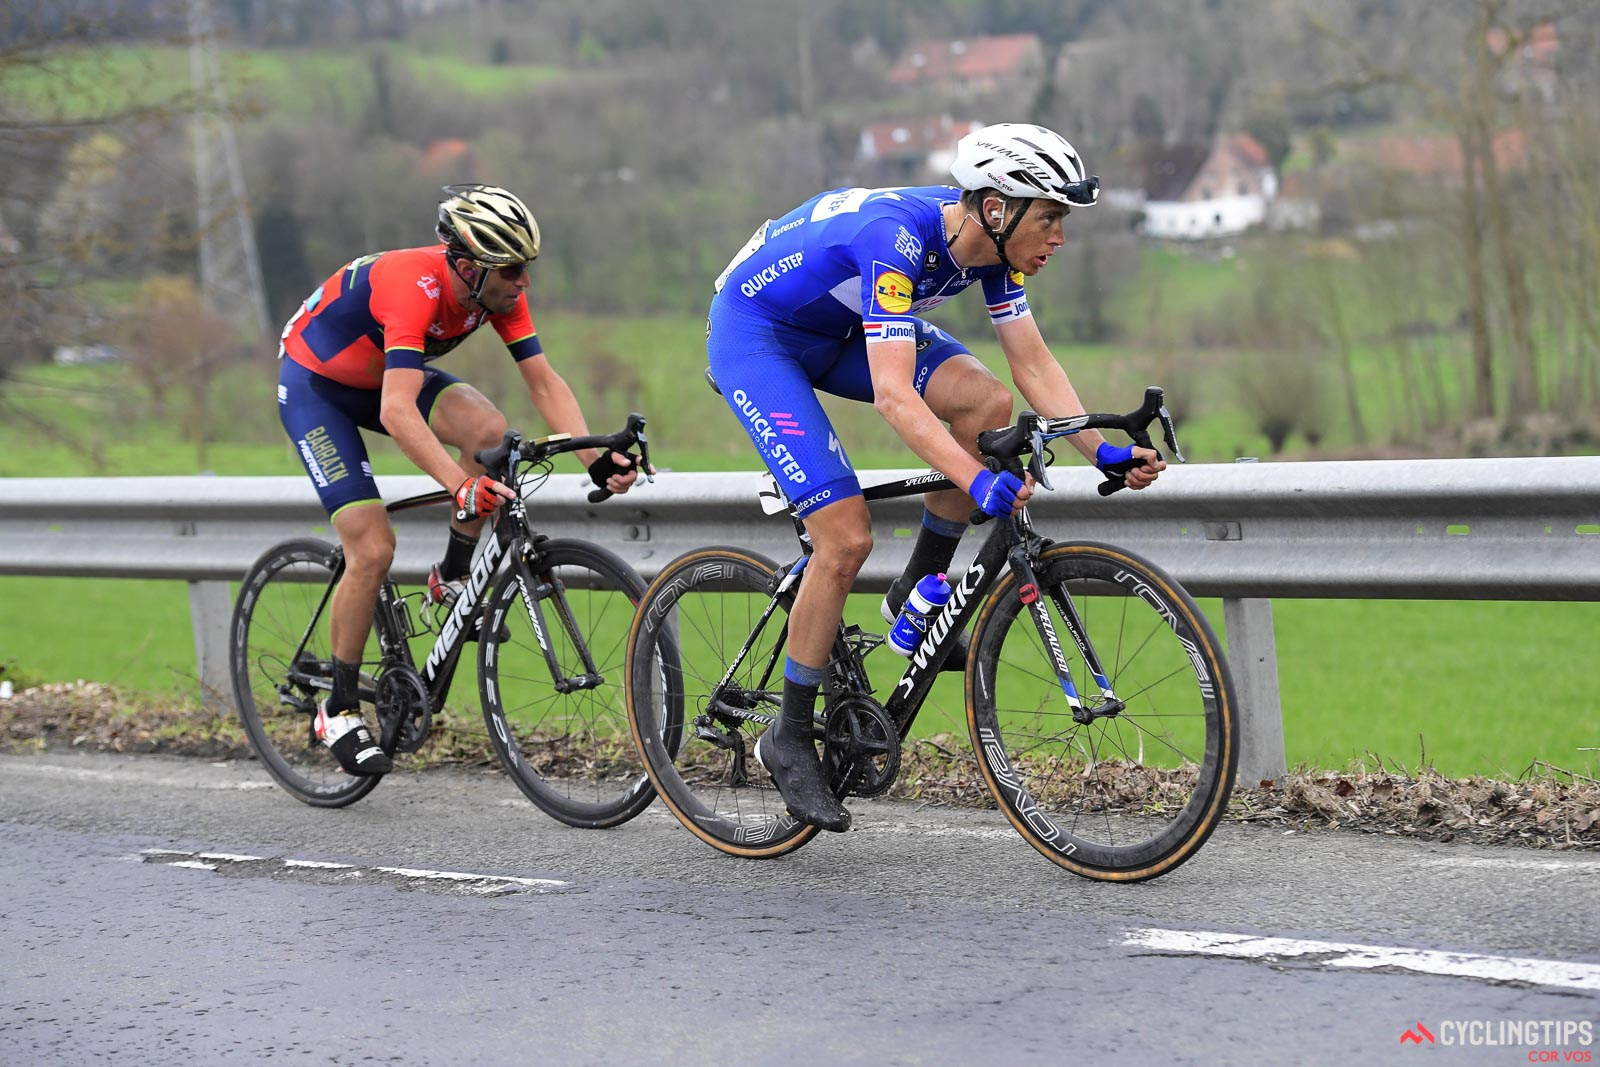 Niki Terpstra and Vincenzo Nibali in the 2018 Tour of Flanders